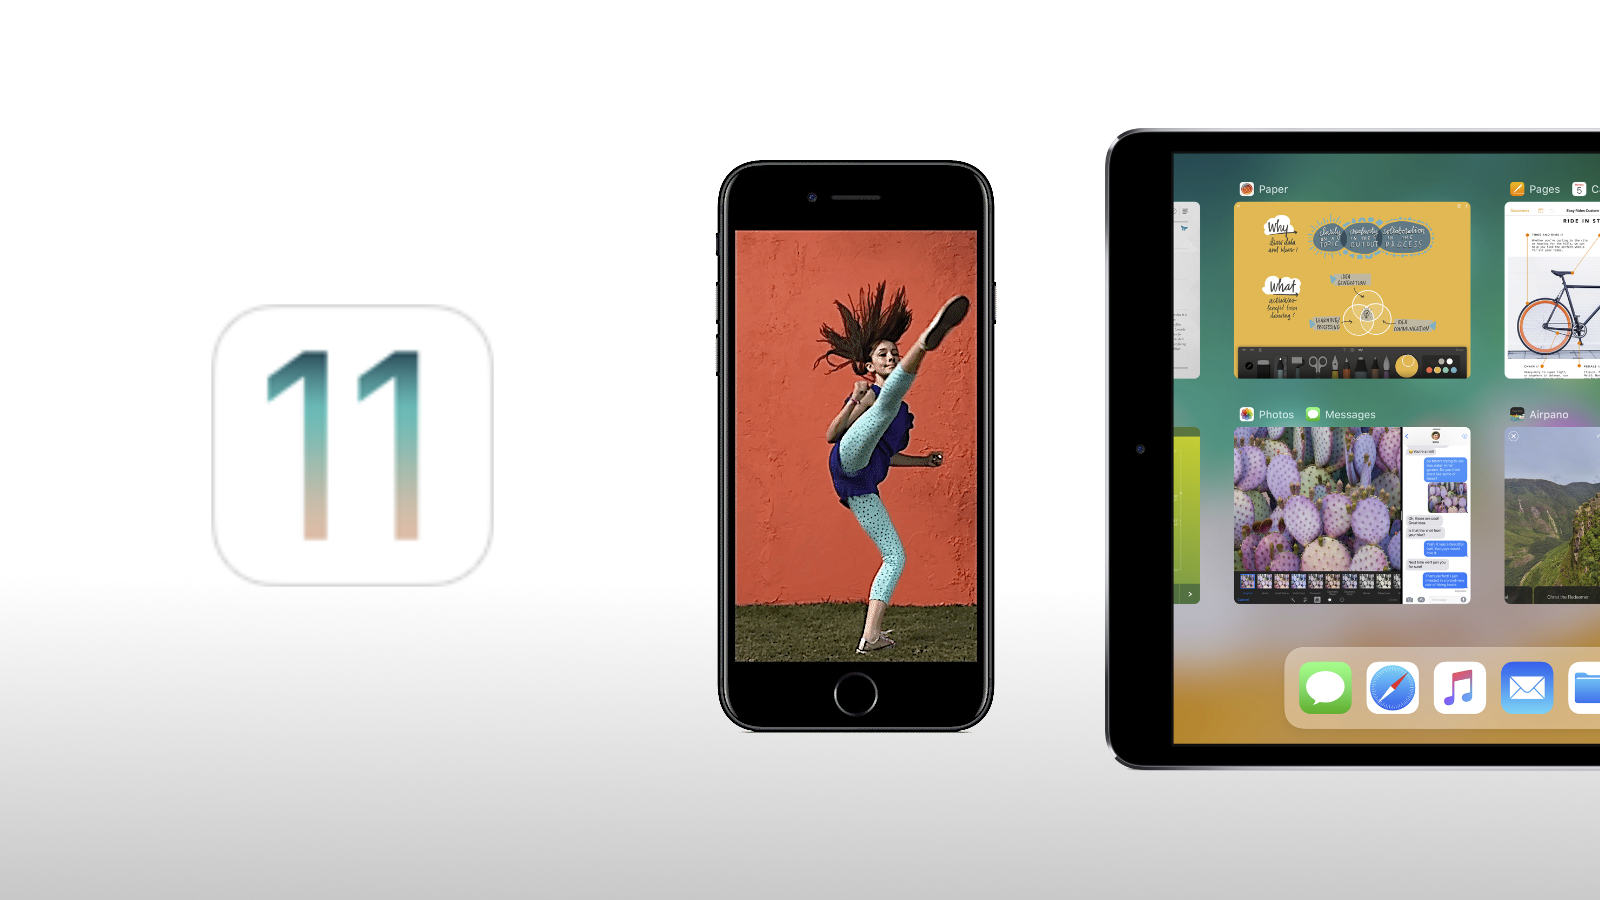 20 ios 11 tips and tricks you need to know to master your iphone 20 ios 11 tips and tricks you need to know to master your iphone or ipad techradar baditri Choice Image